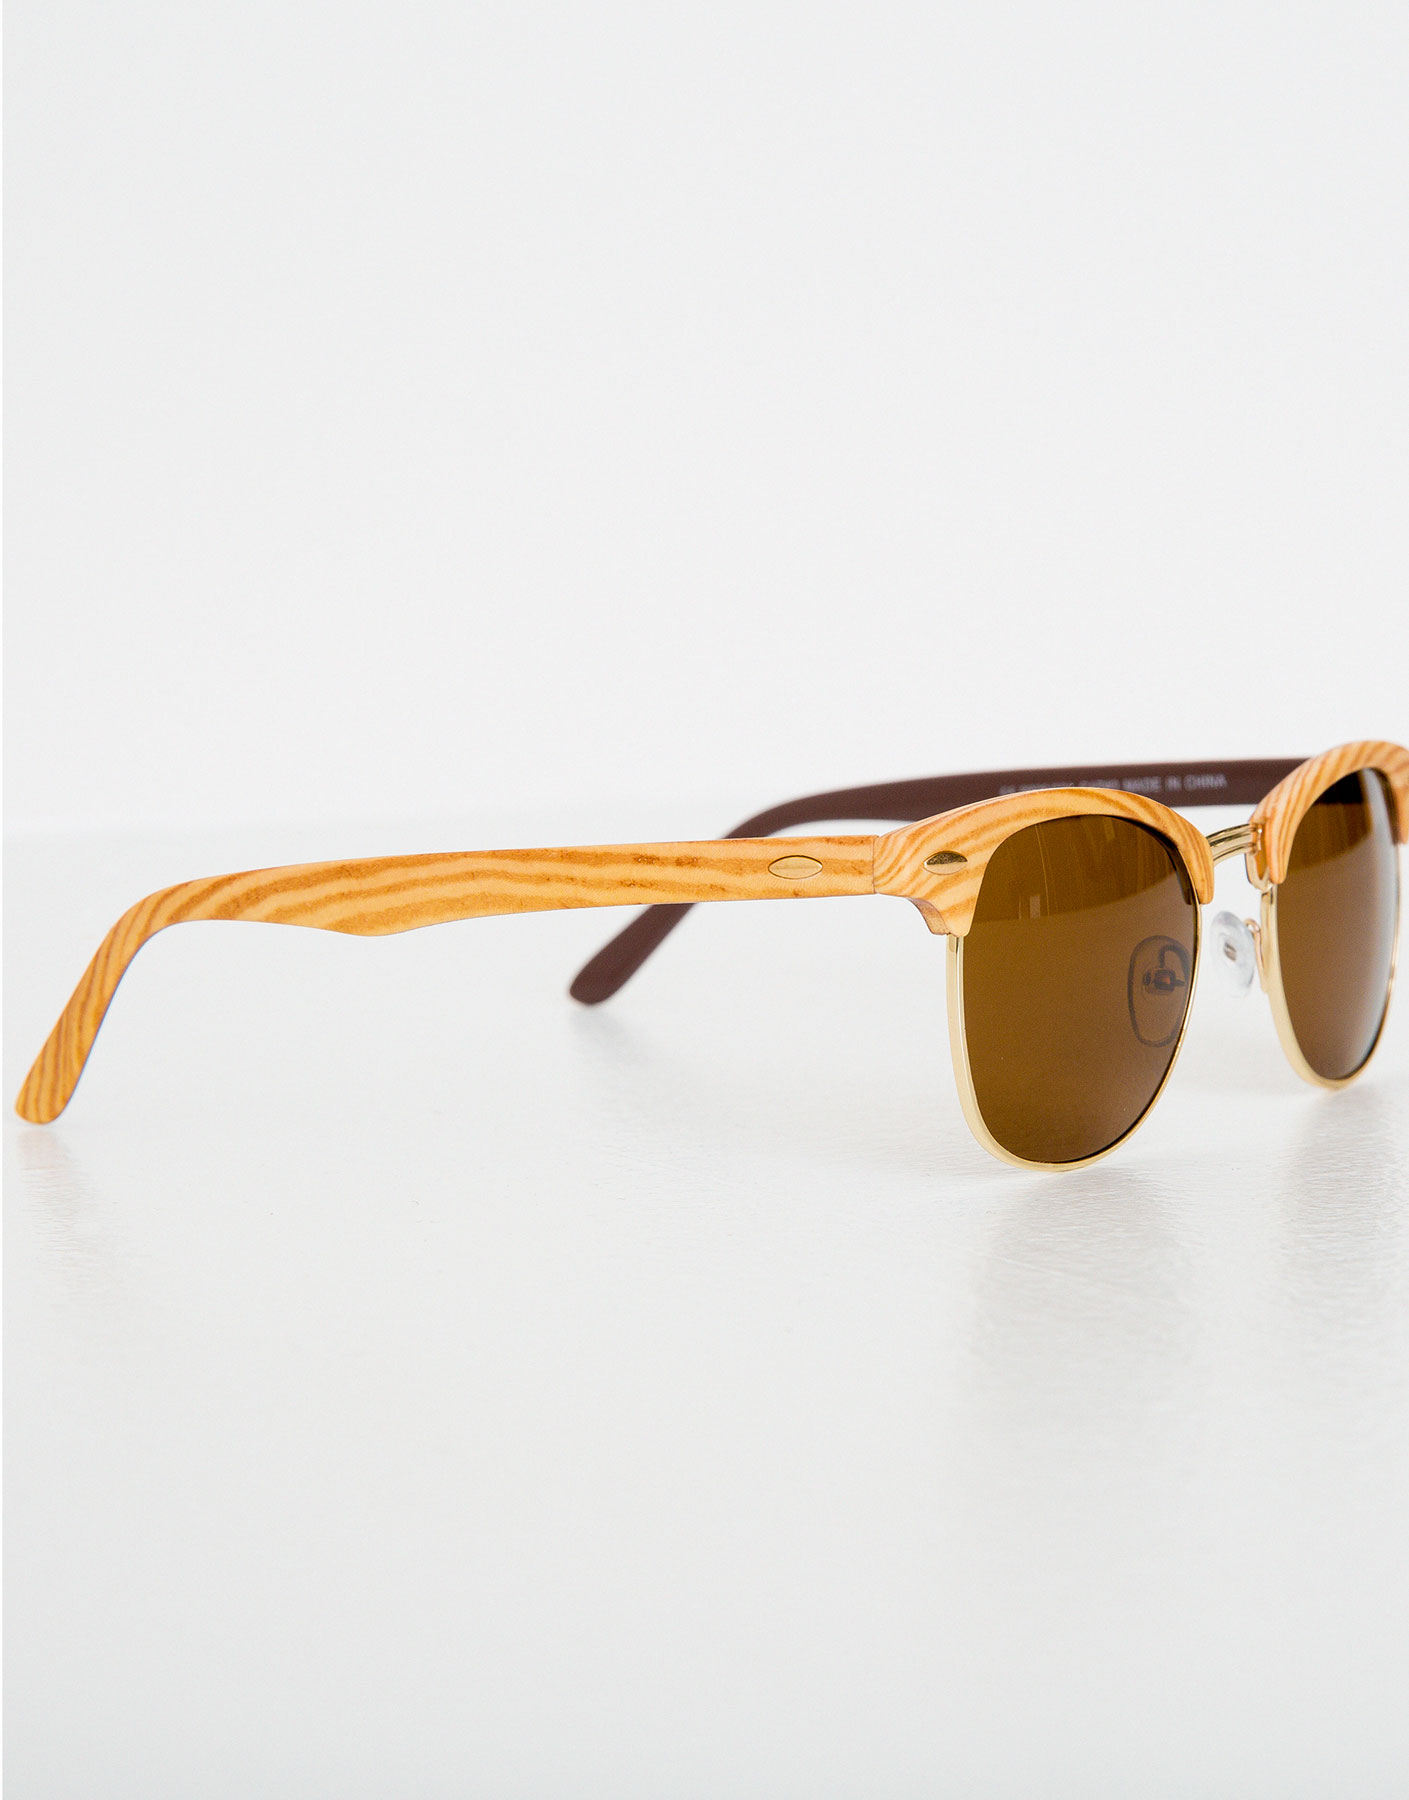 Sunglasses with wood effect frames